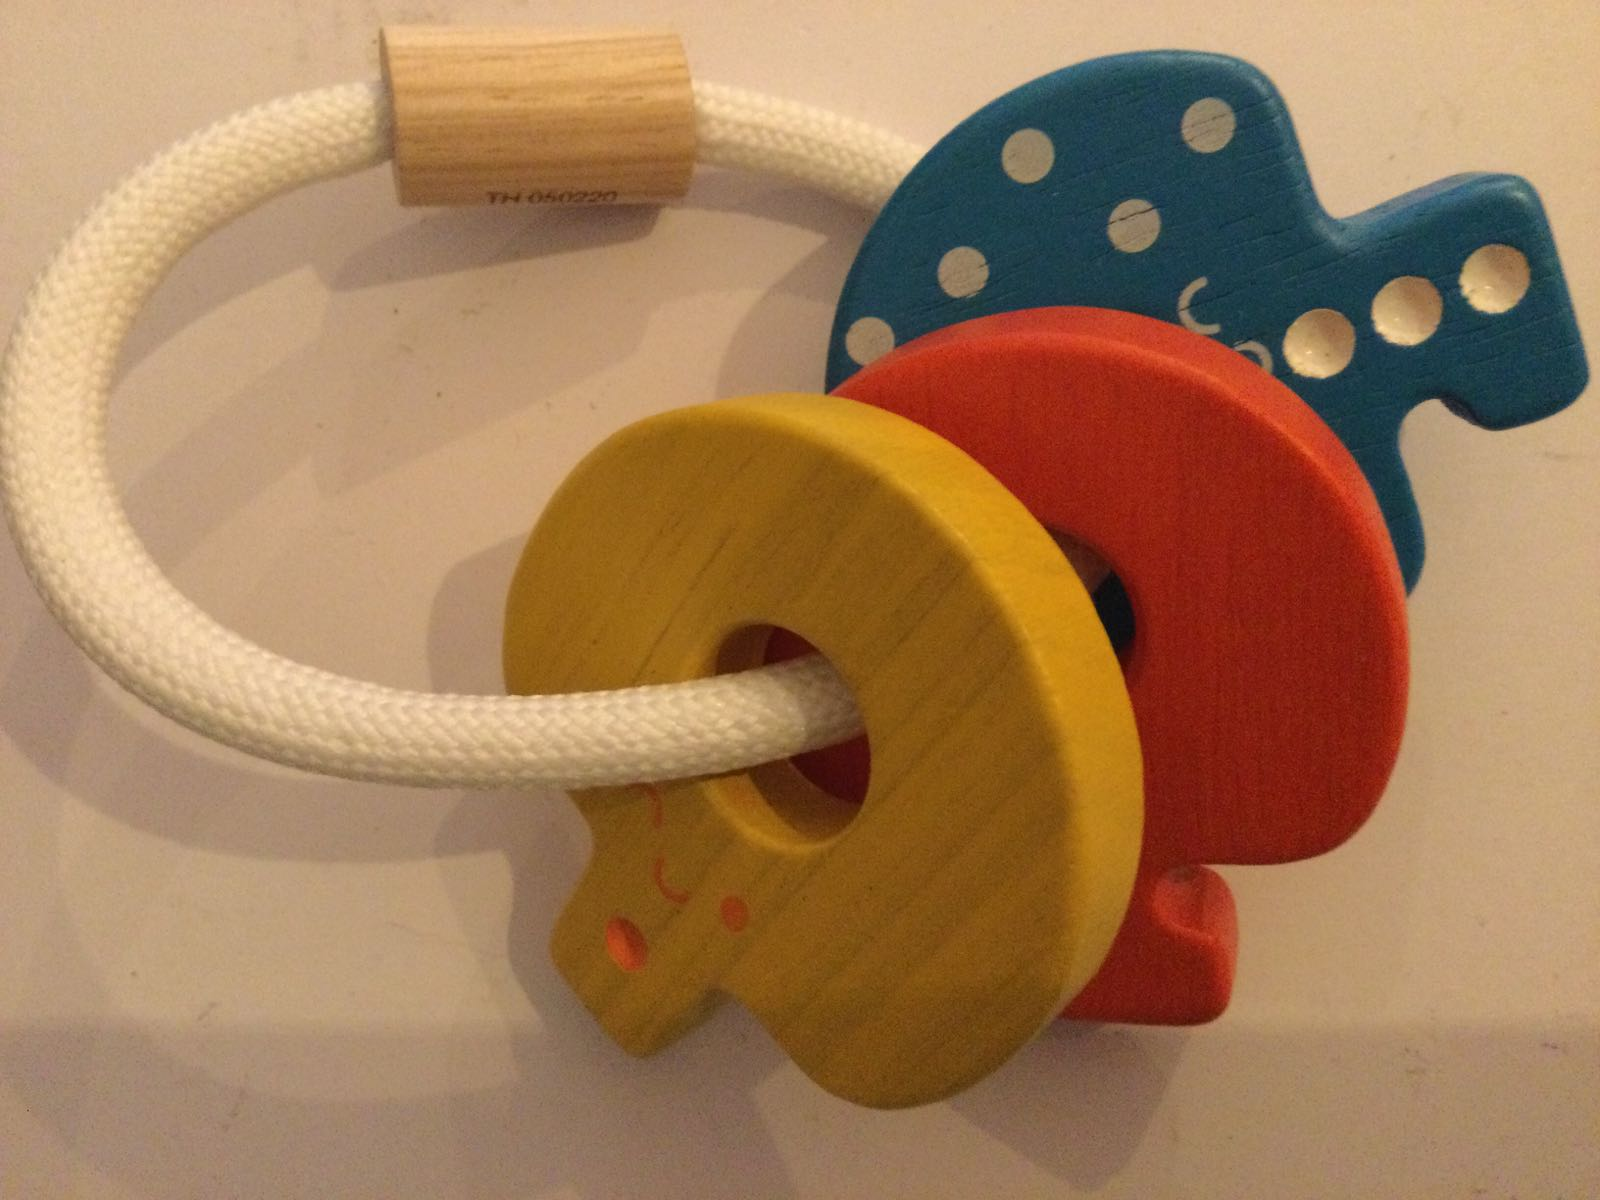 Plan toys -  Baby Kay rattle - Bright